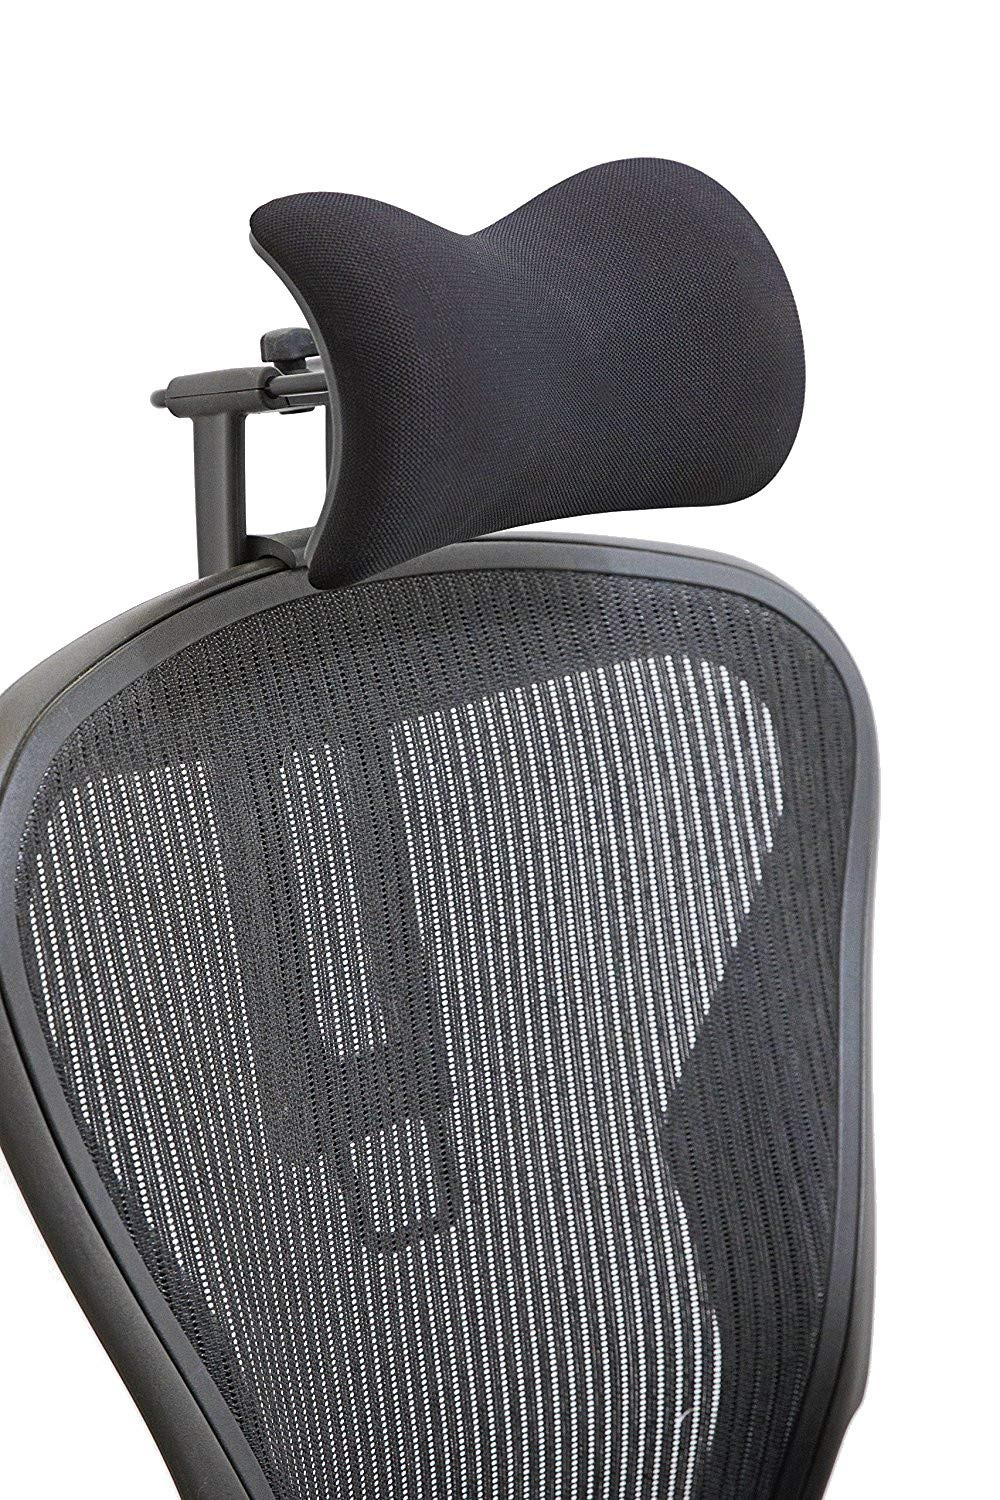 Atlas headrest for herman miller aeron chair